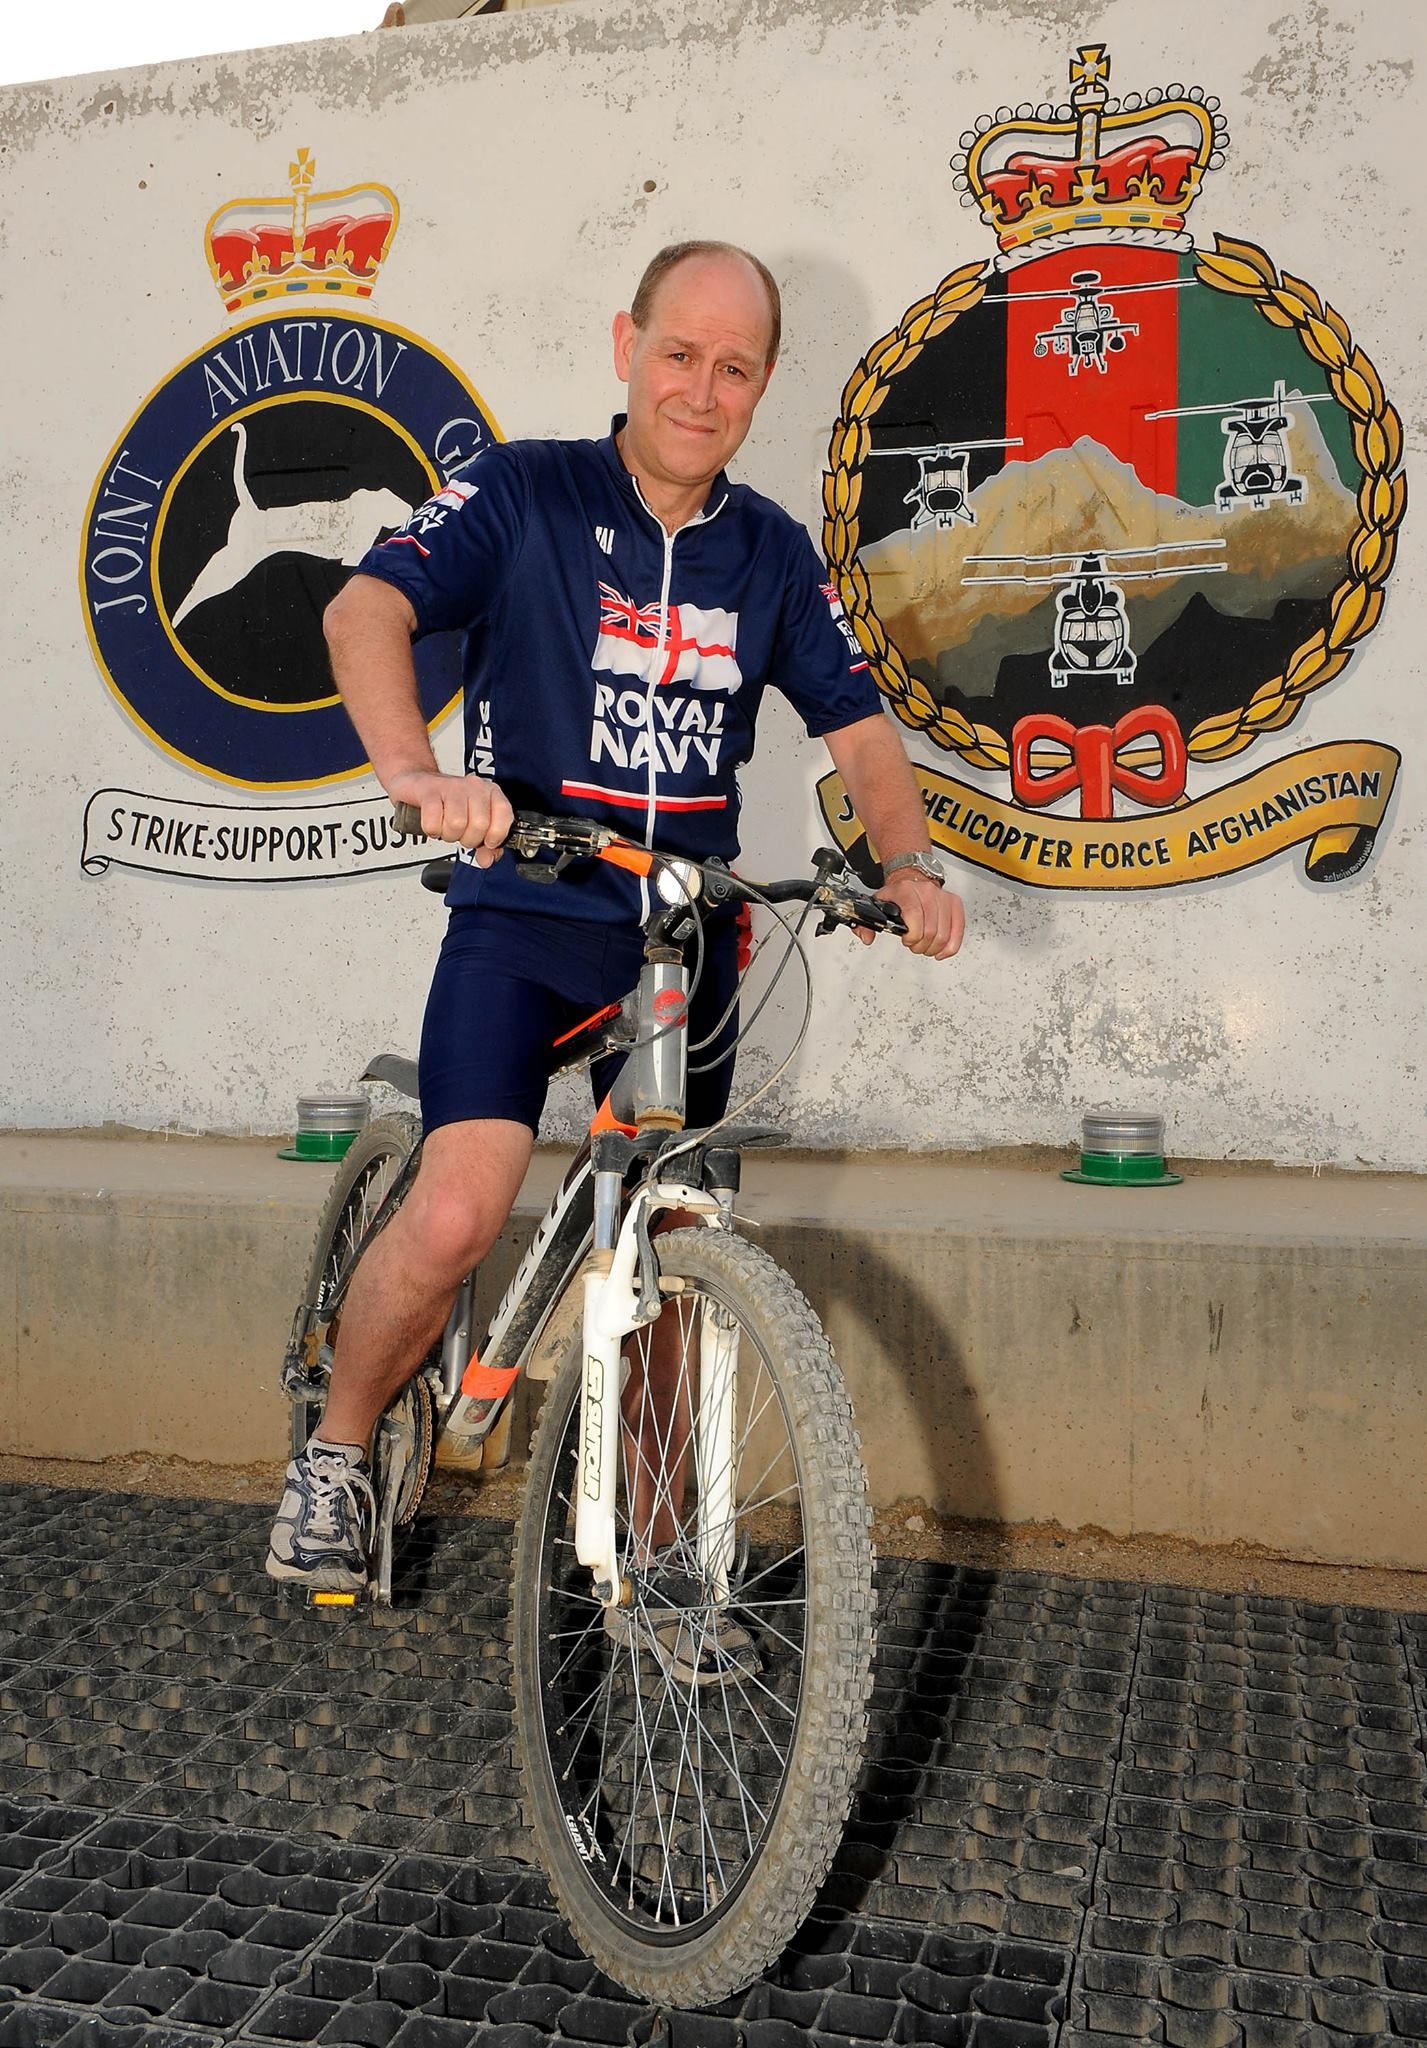 http://A%20volunteer%20wearing%20a%20Royal%20Navy%20top%20on%20a%20mountain%20bike%20in%20front%20of%20two%20forces%20logos%20painted%20on%20a%20wall.